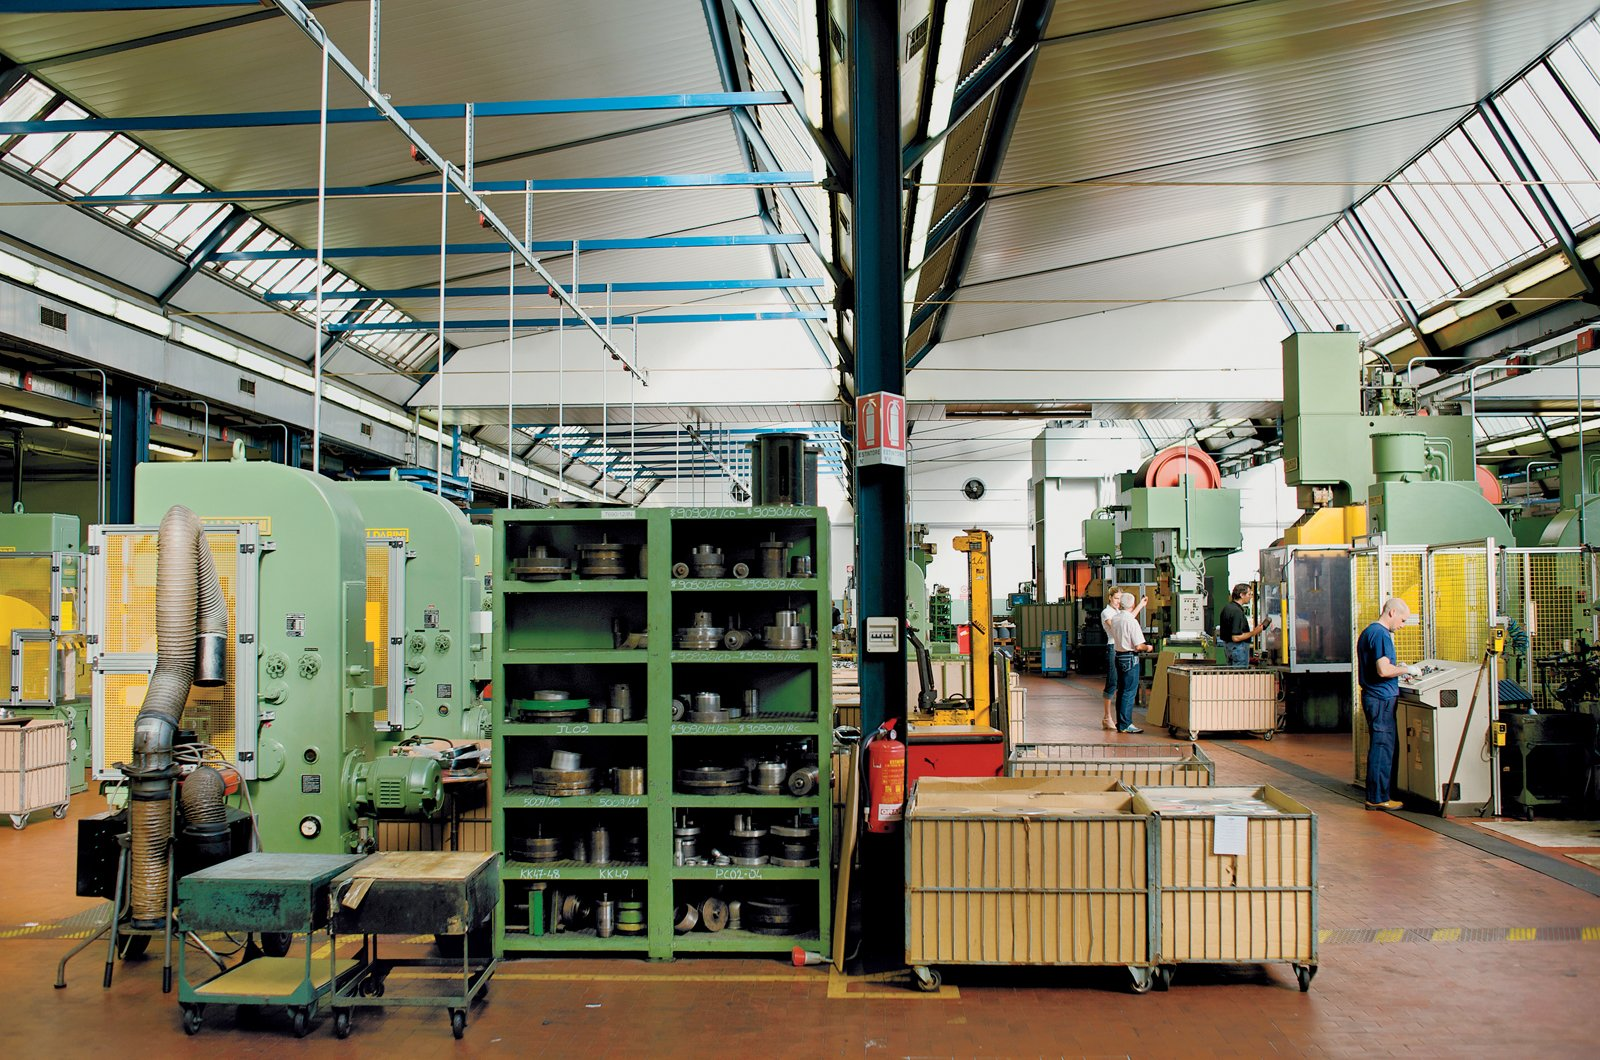 The factory contains a wide array of hydraulic presses. The cagelike bins hold groups of cold-pressed objects left ready for the next phase of production. Alessi's facility manufacture fifty-thousand 9090's per year.  The Alessi 9090 by Virginia Gardiner